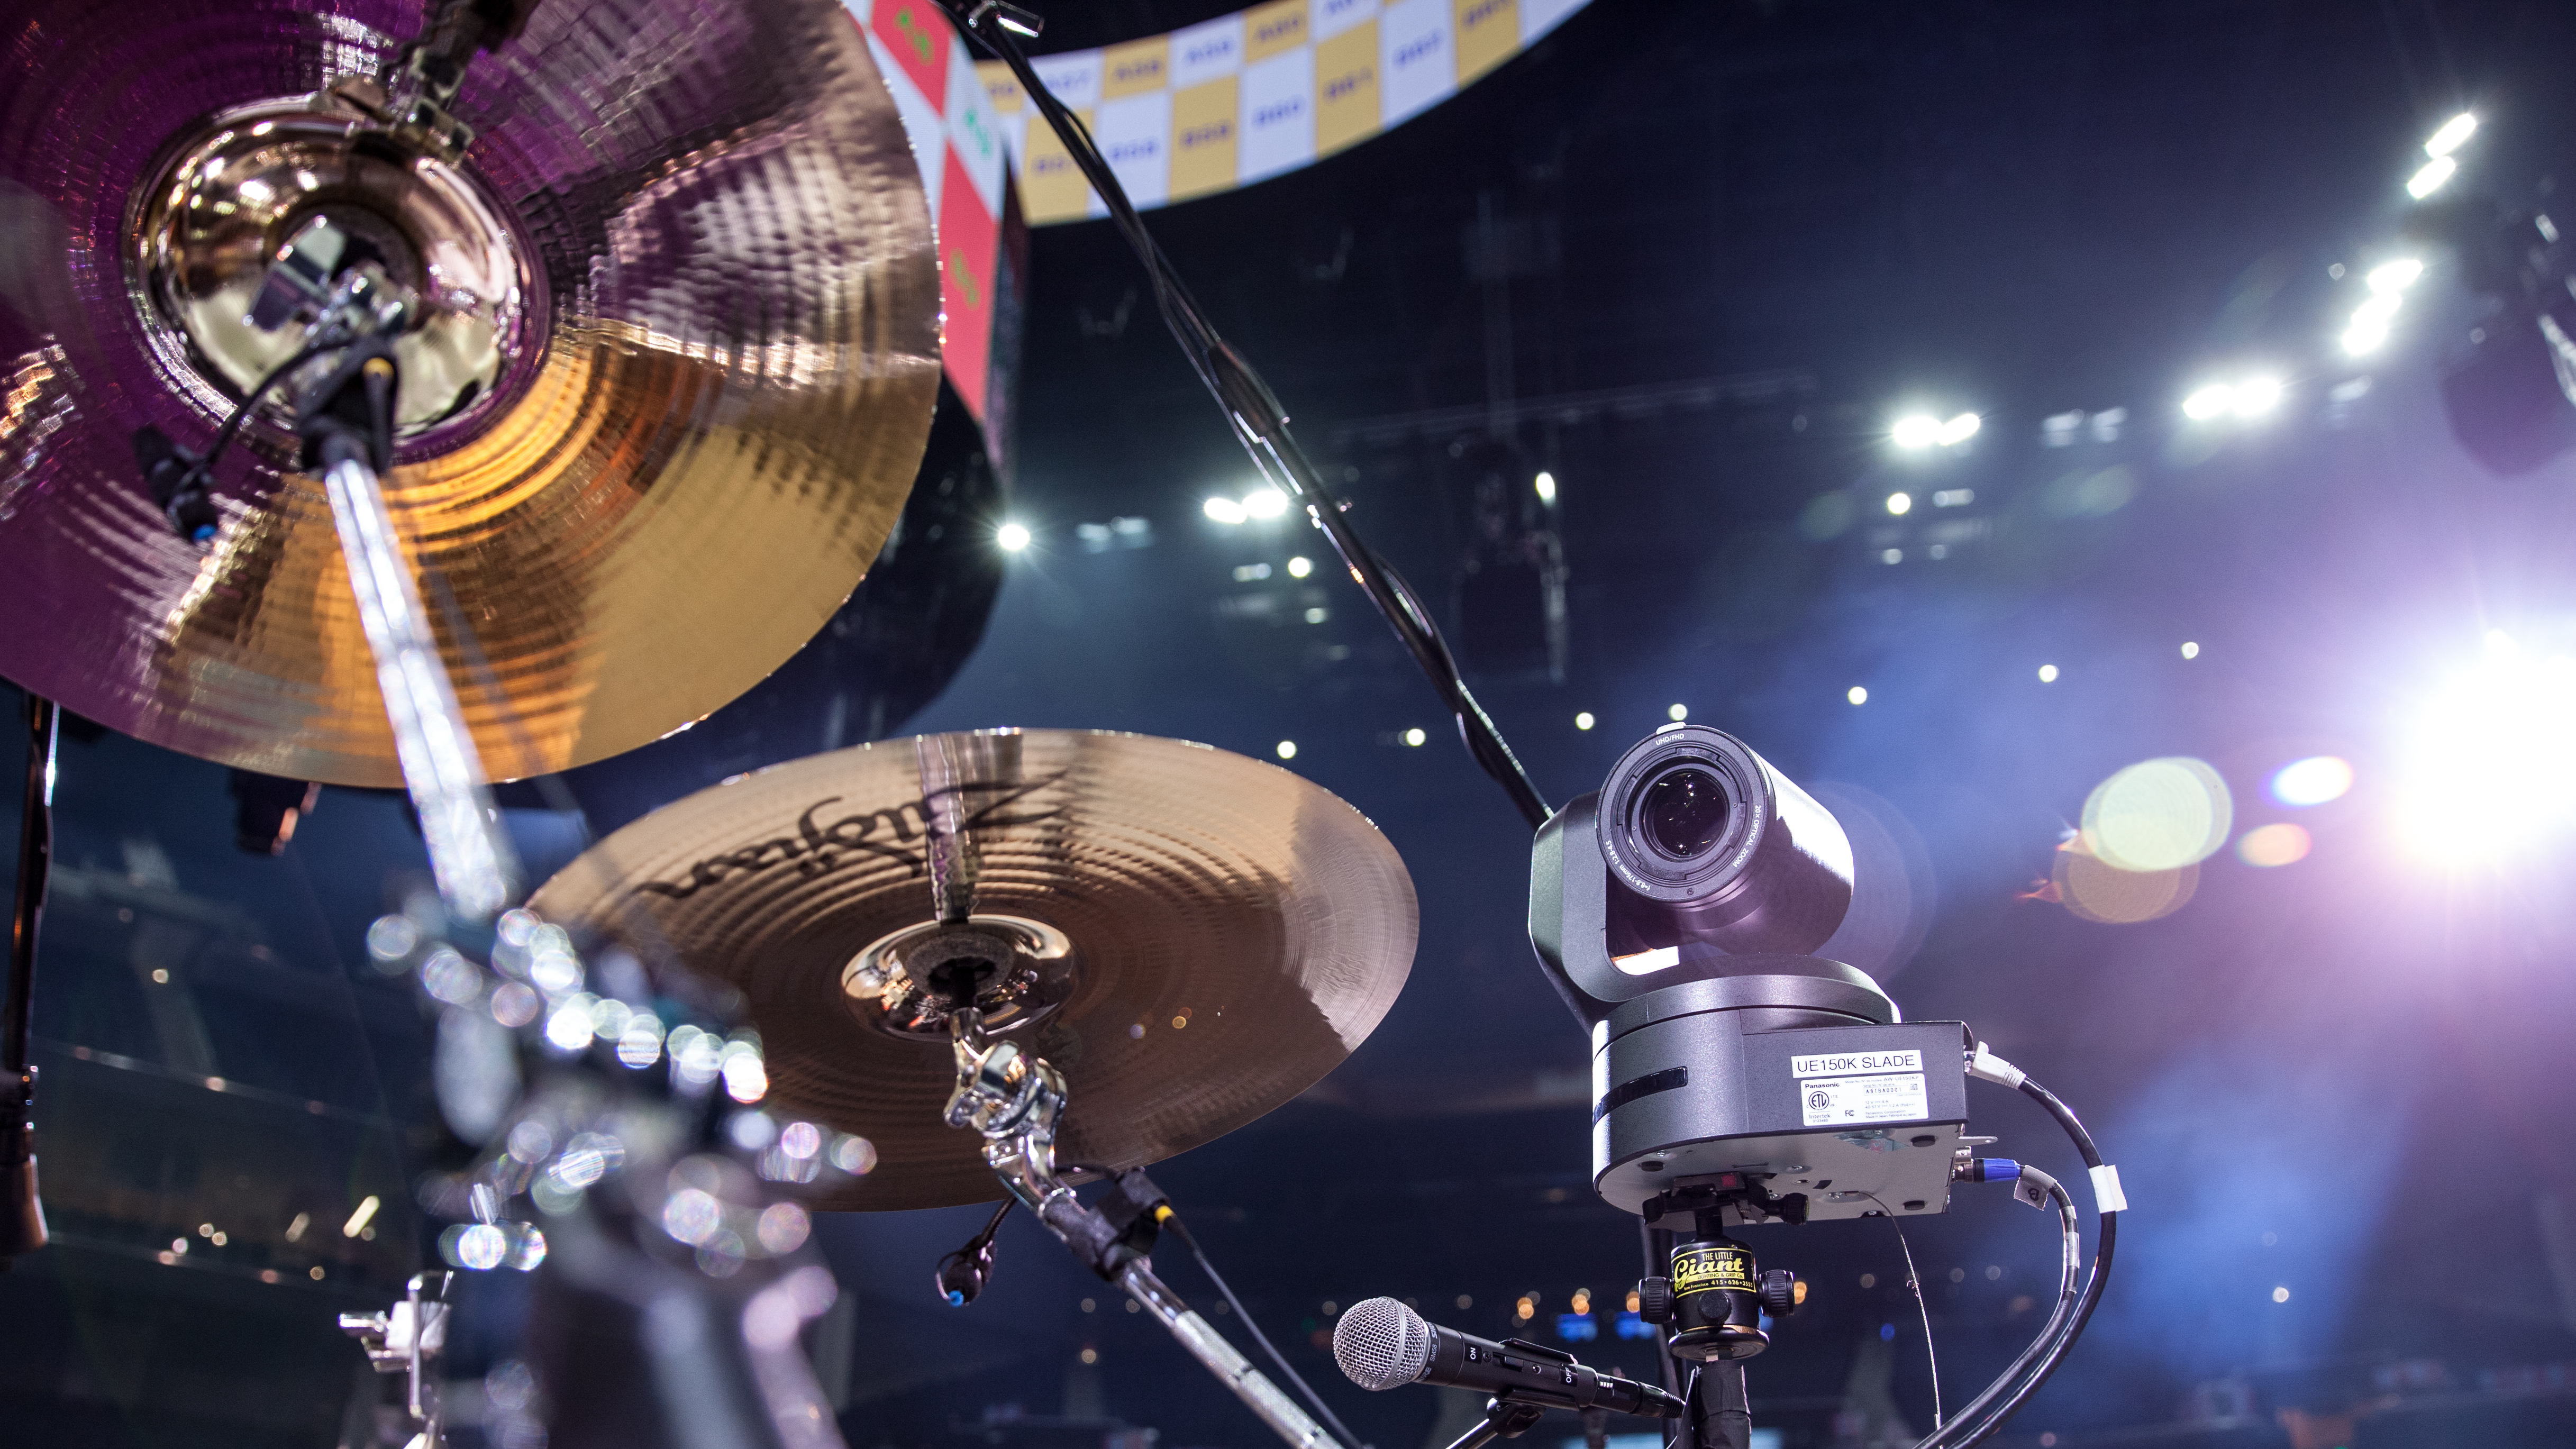 UE150 camera pointed at a drum set